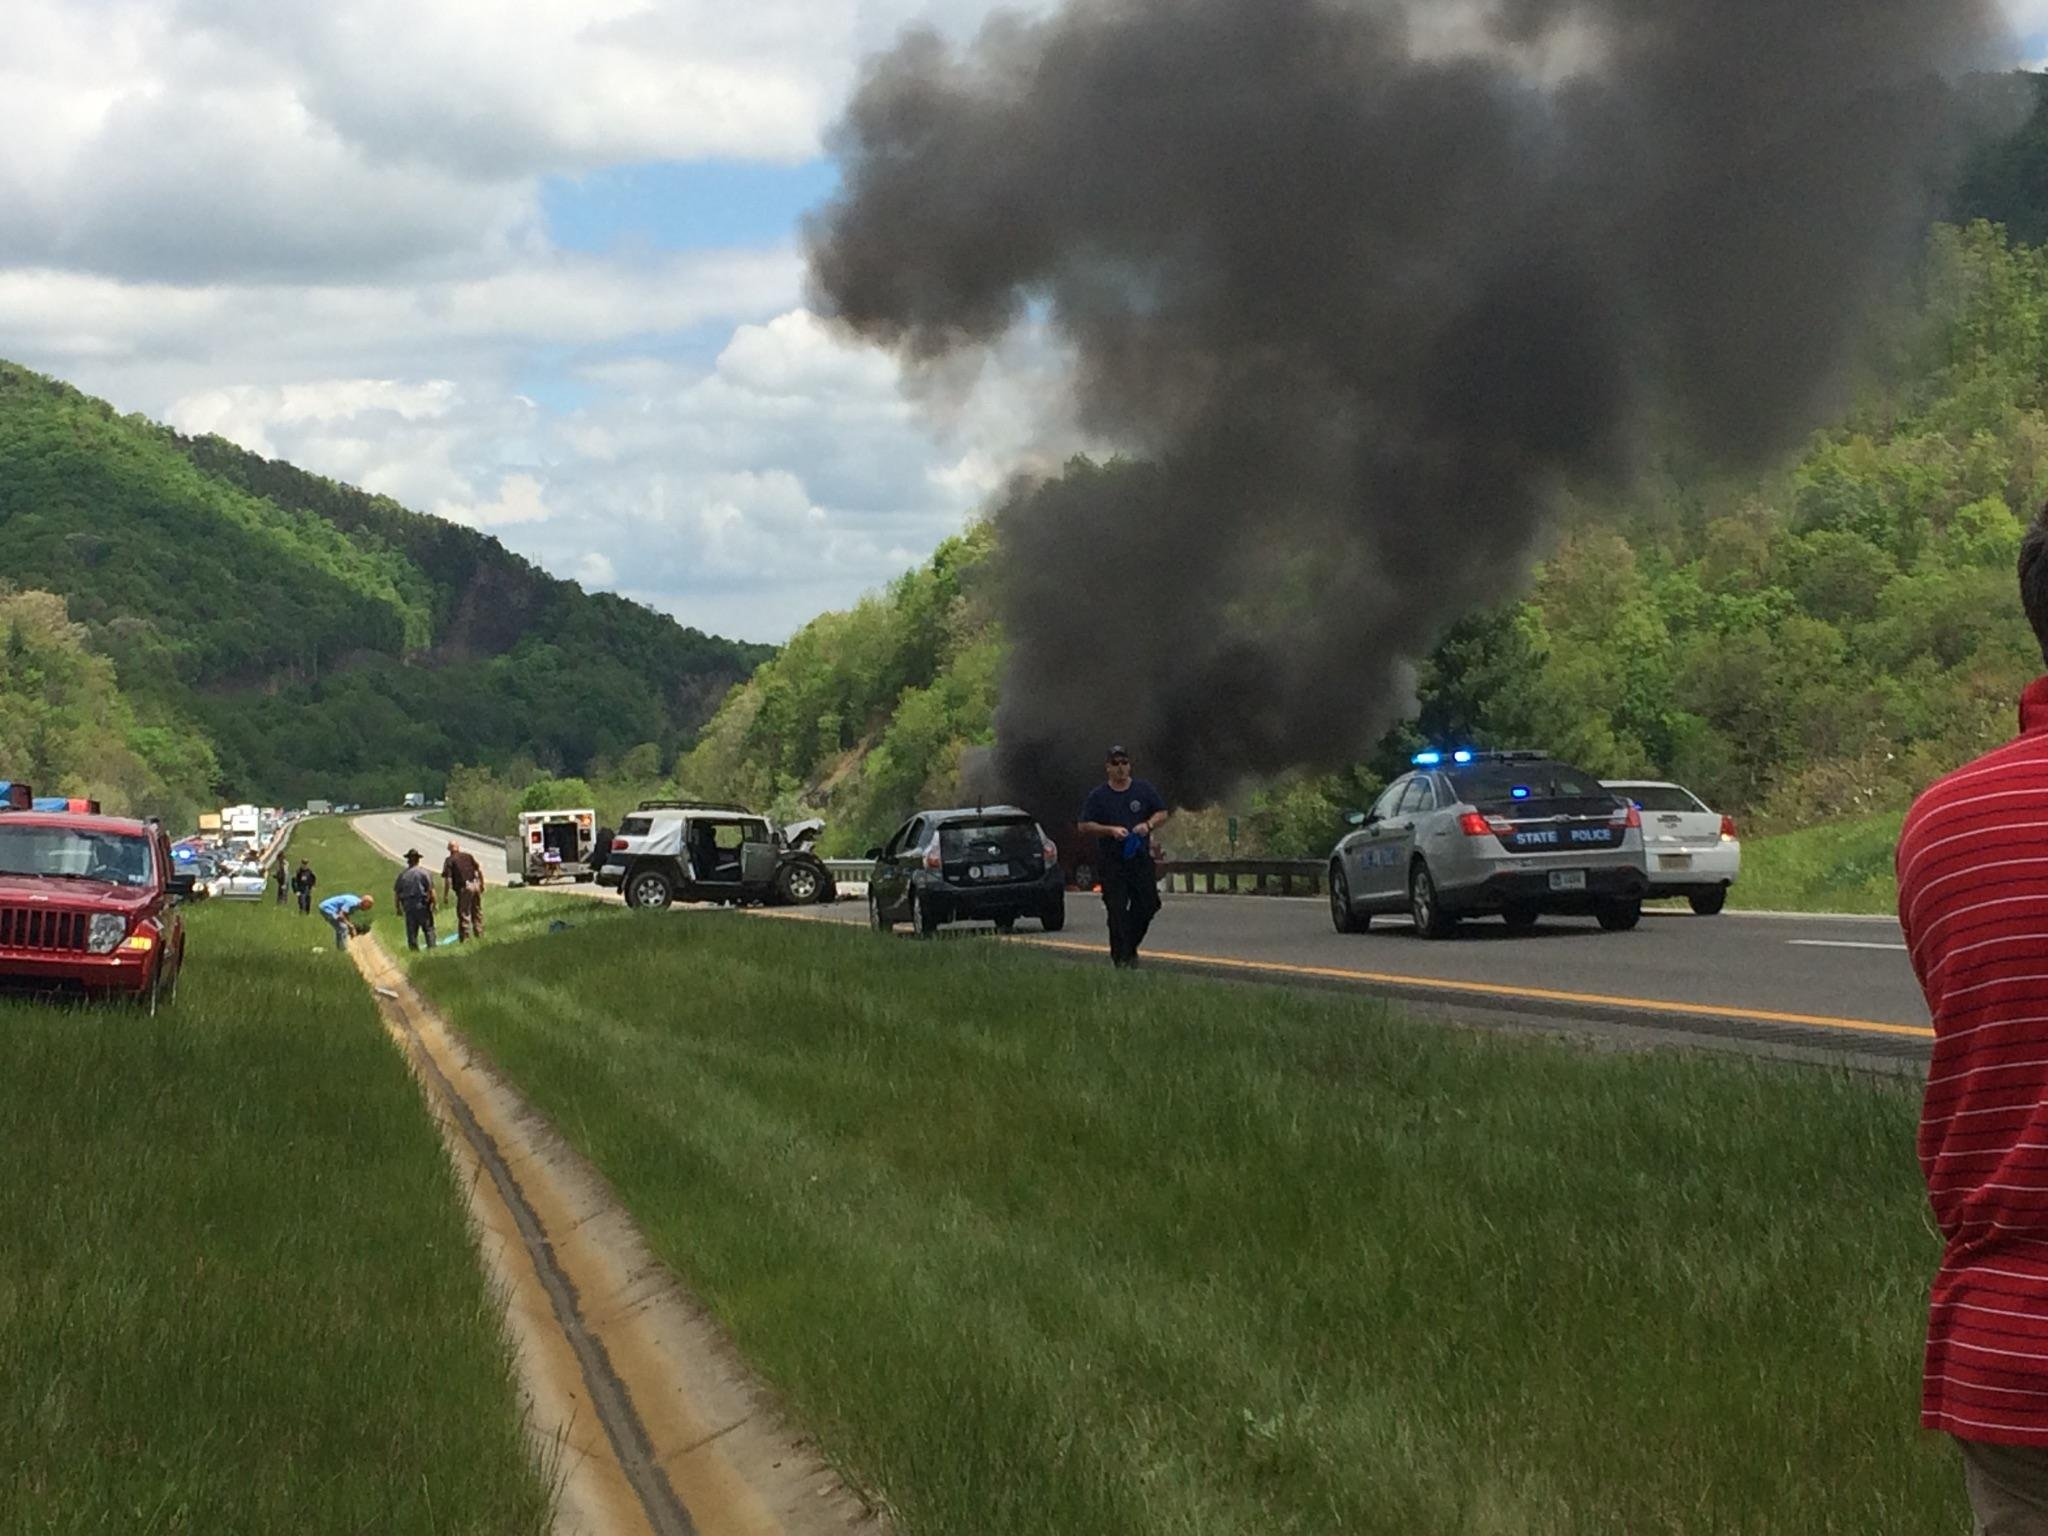 ... fatal crash - WVVA TV Bluefield Beckley WV News, Weather and Sports